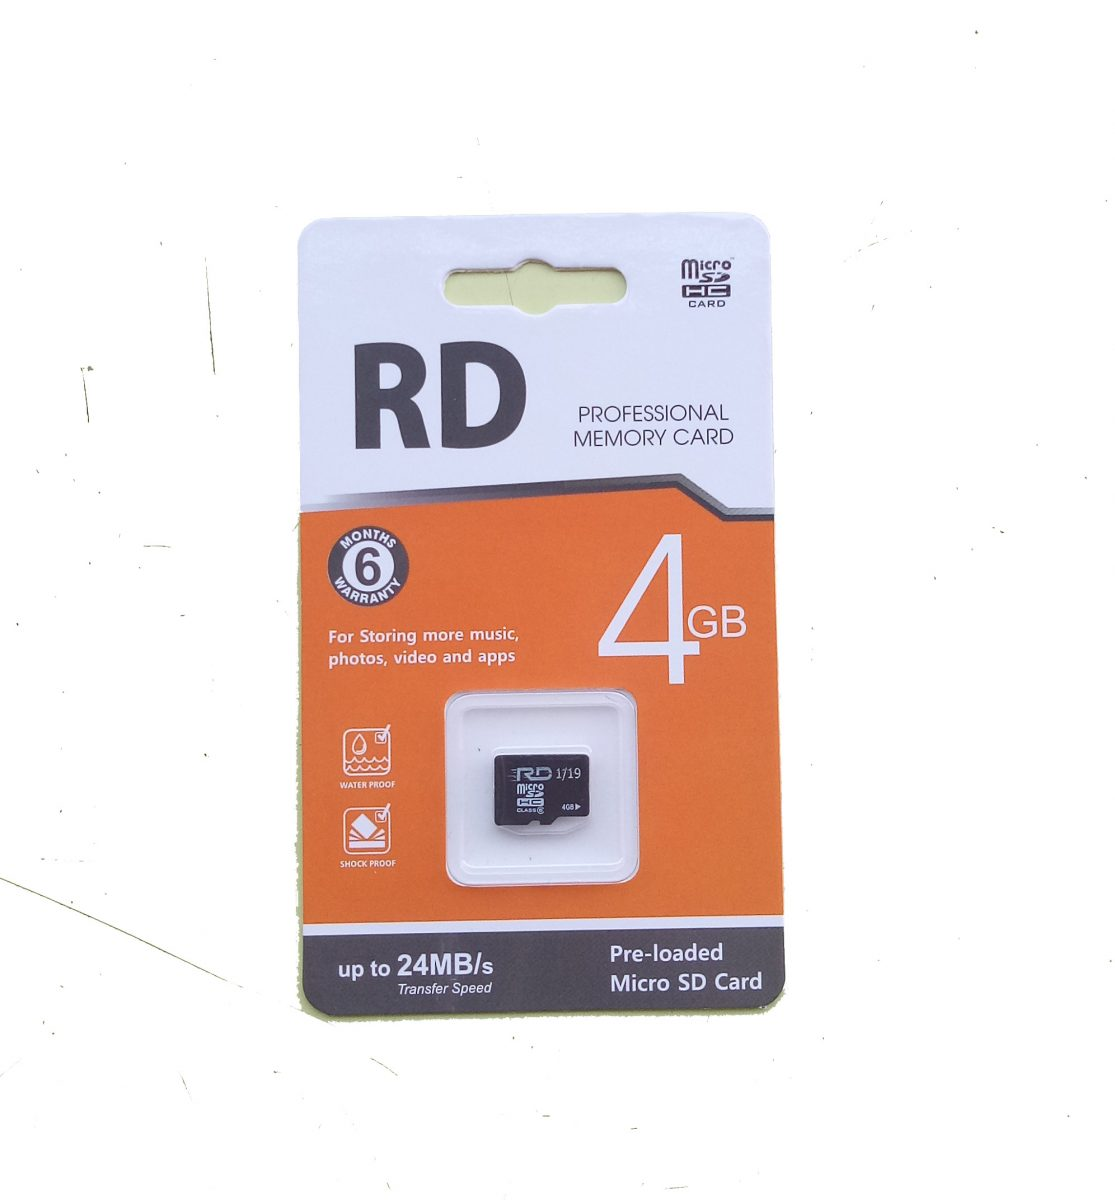 RD 4GB Memory card 1 Year warranty